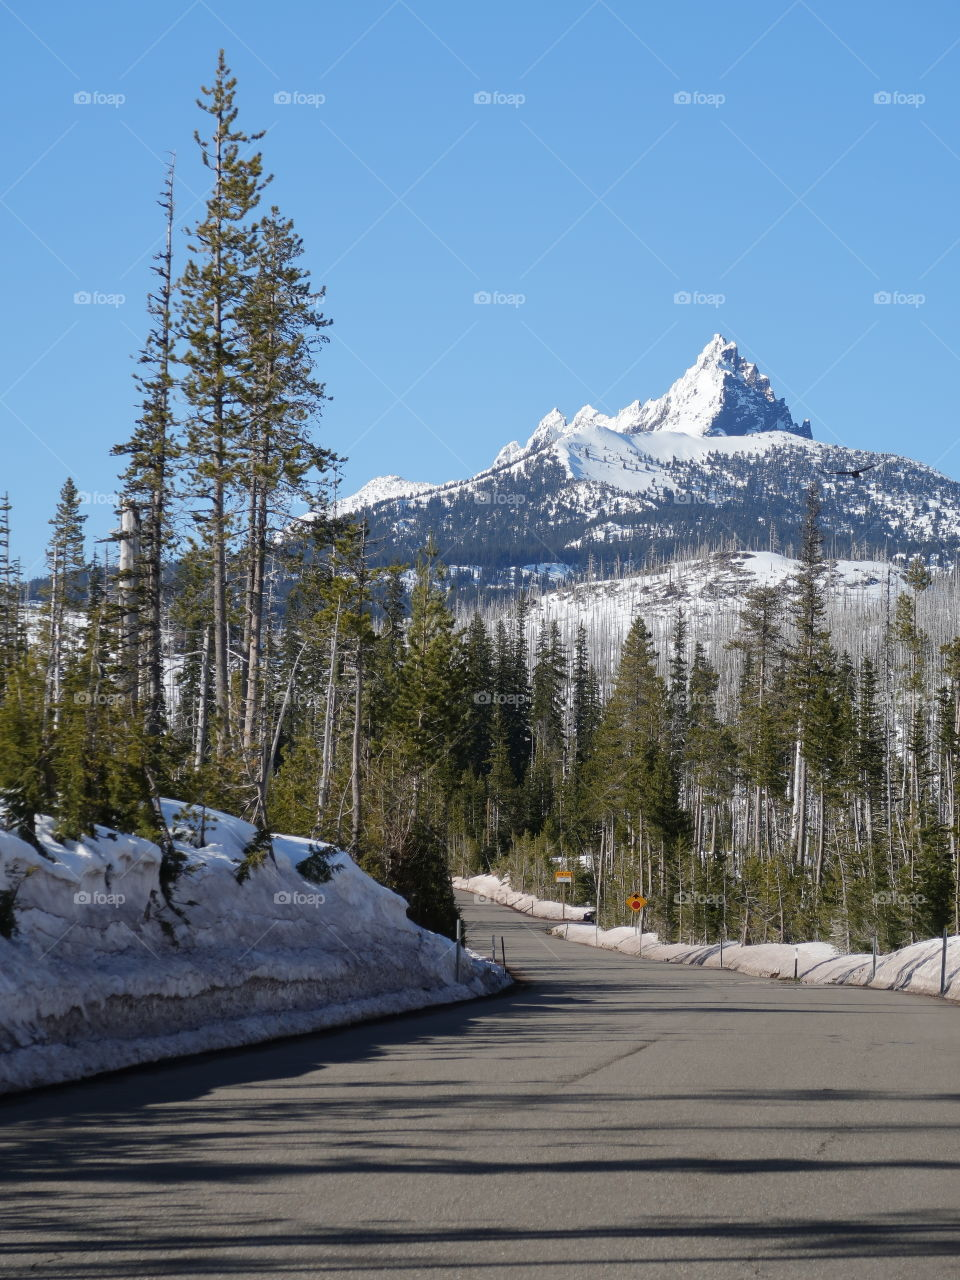 The magnificent snow covered Three Fingered Jack in Oregon's Cascade Mountain Range against a clear blue sky on a beautiful spring day.